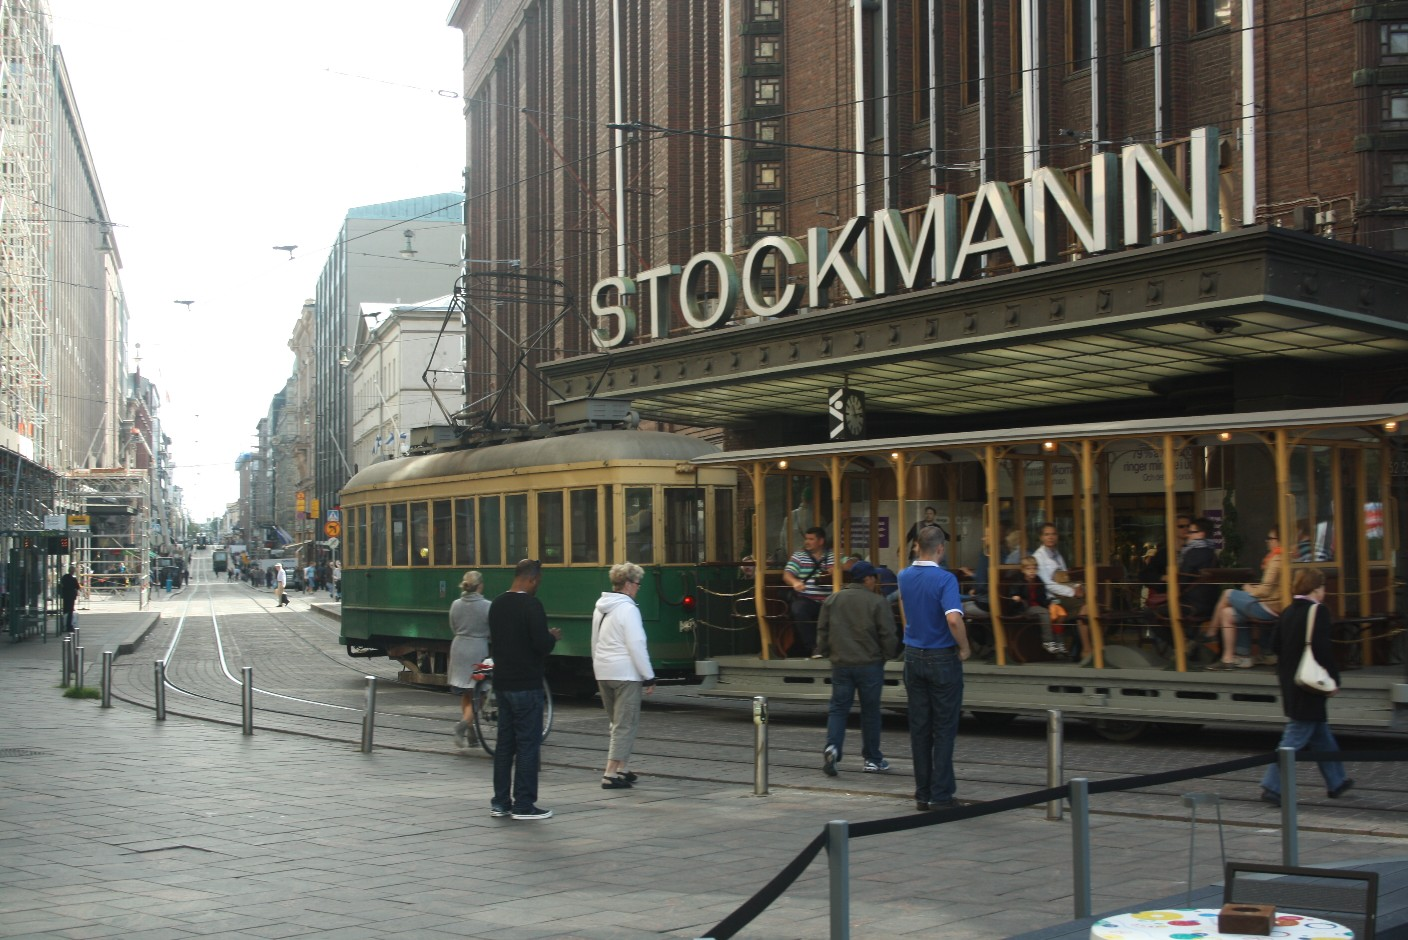 Stockmann is Helsinki's oldest department store and also hosts Northern Europe's biggest super-market.